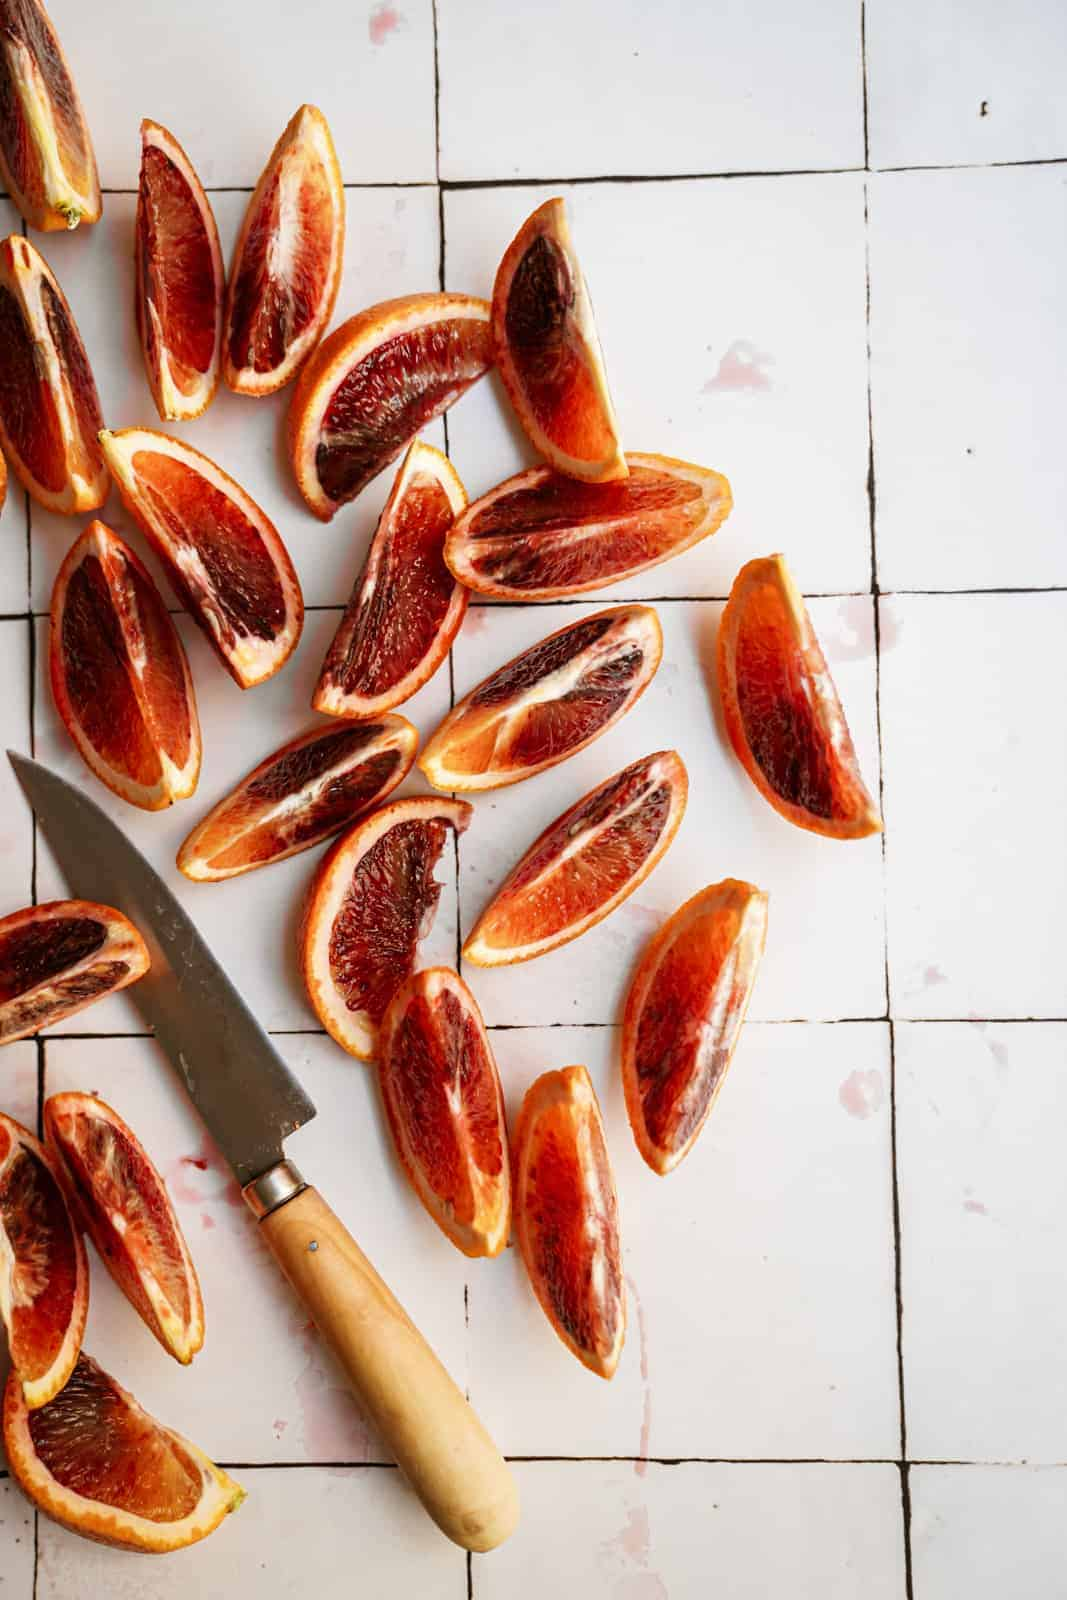 Slices of blood oranges on a white countertop for blood orange salad